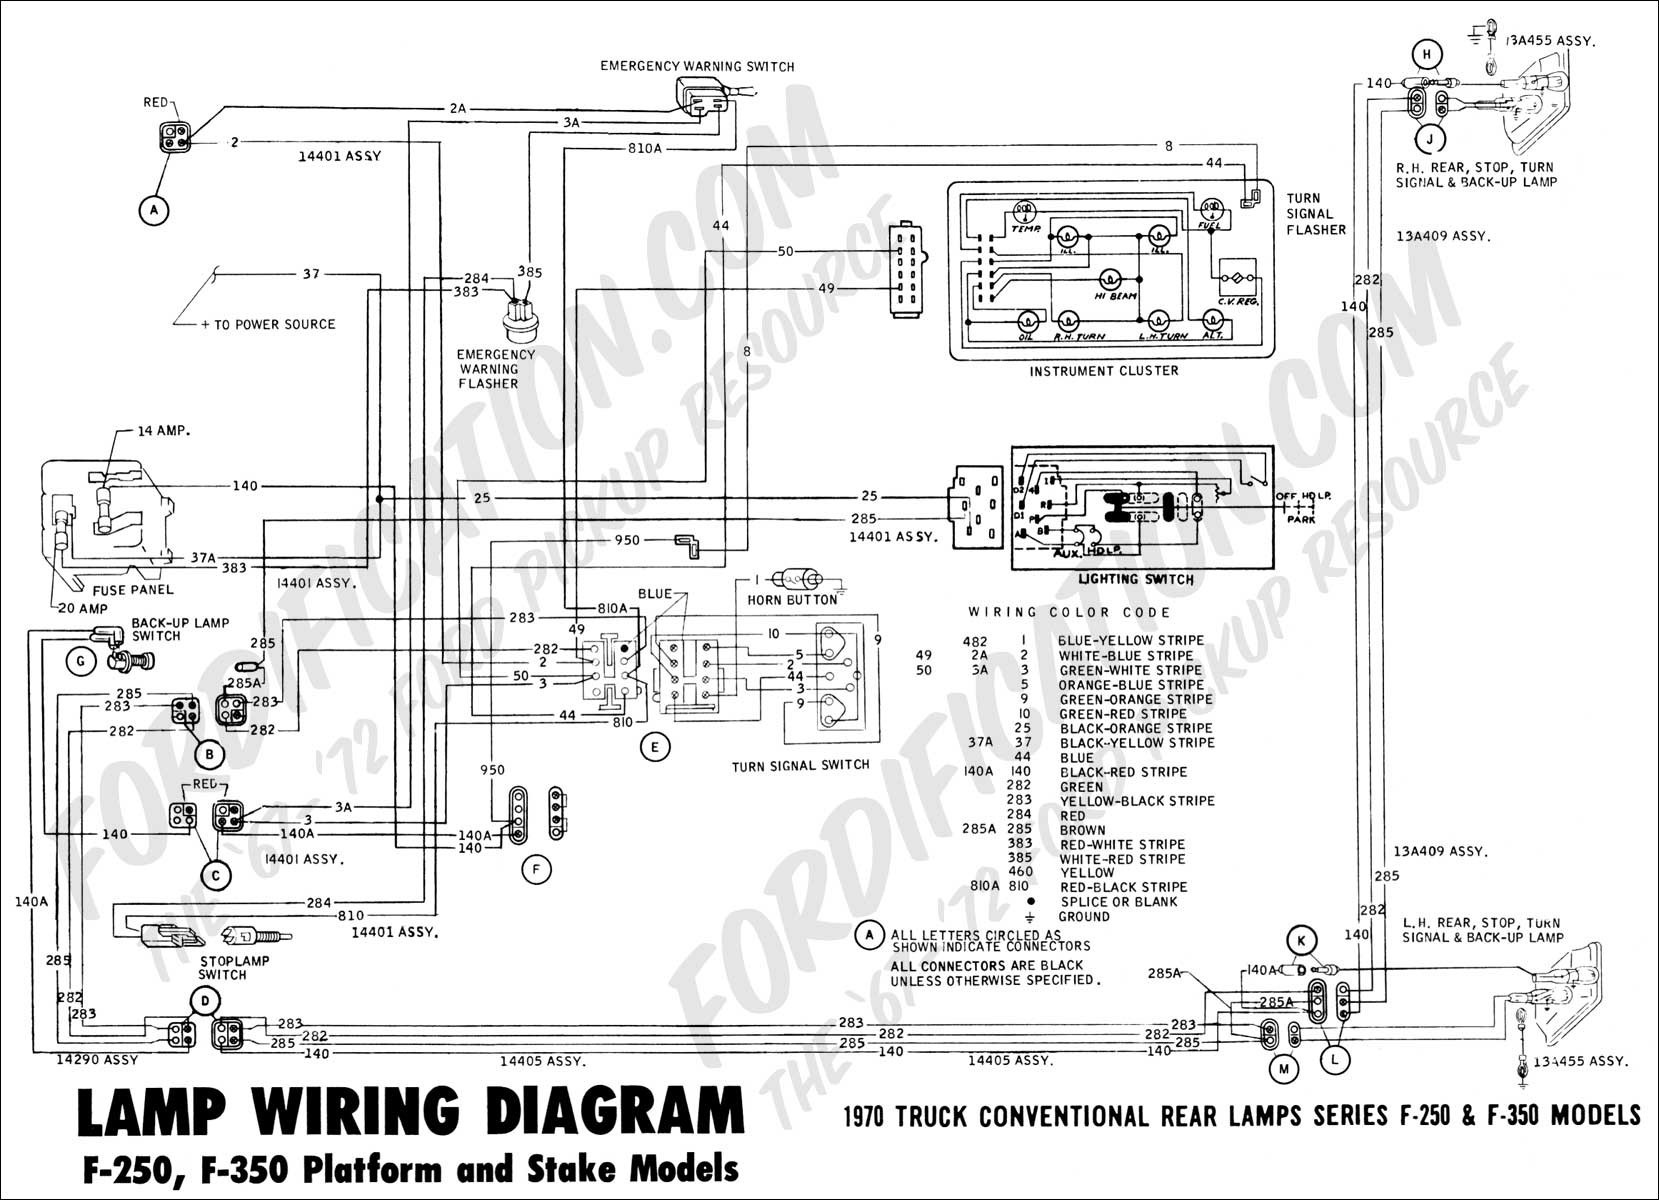 1968 ford bronco tail light wiring diagram wiring library 1968 ford bronco tail light wiring